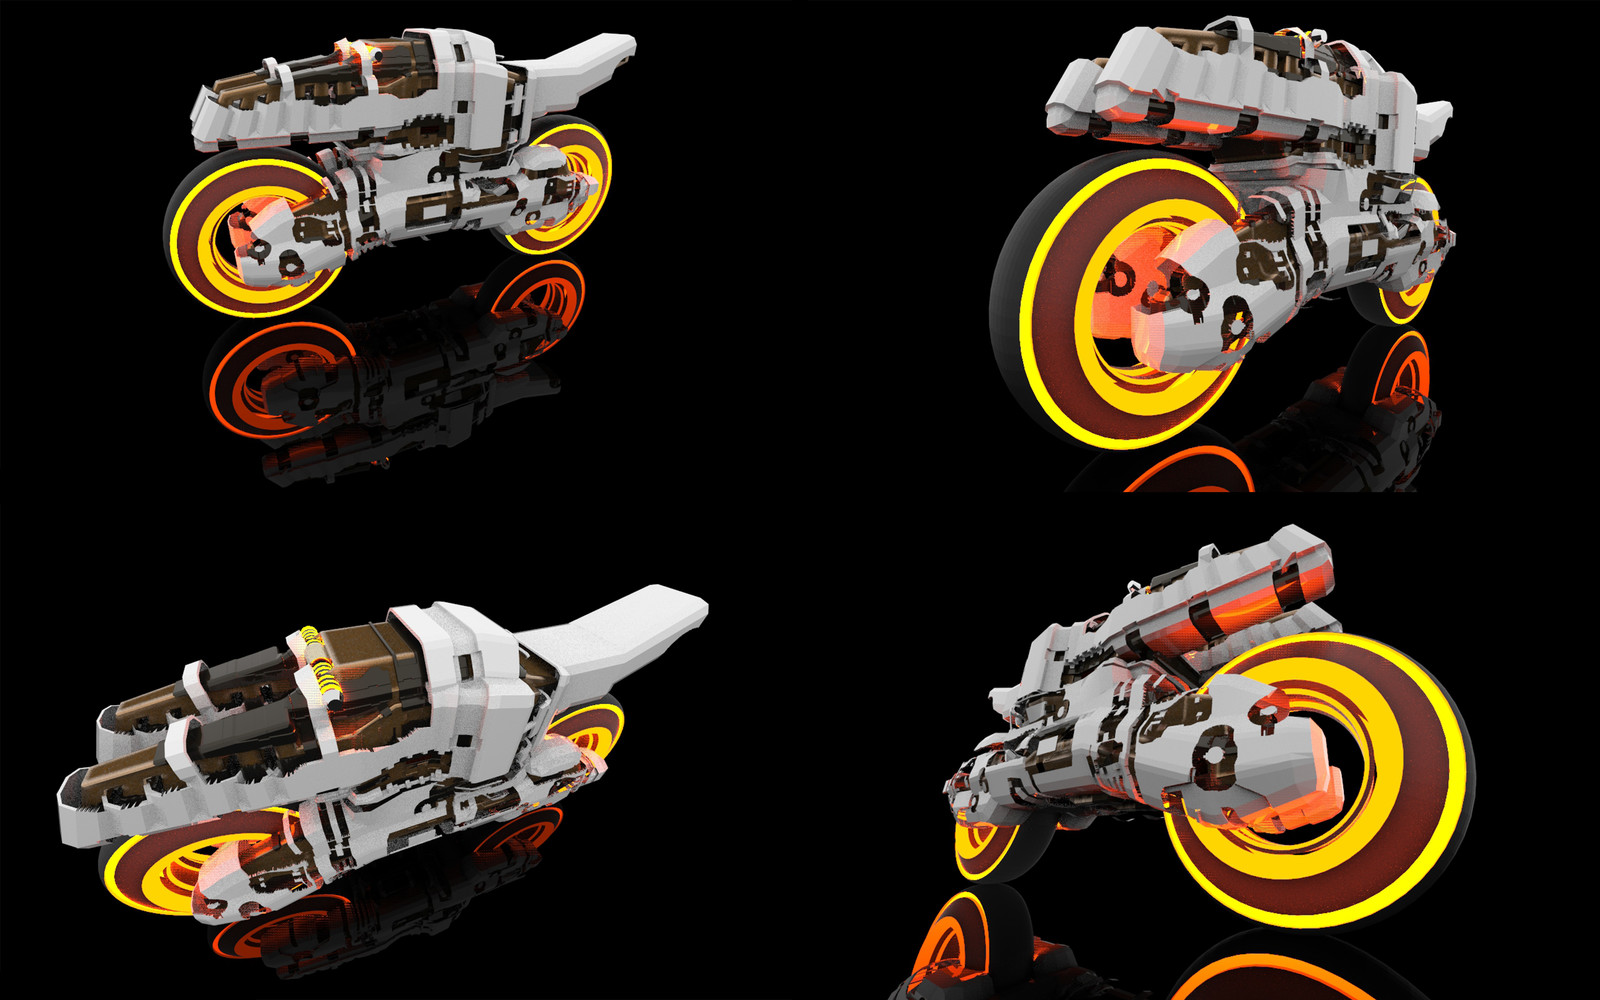 Sci Fi Motorcycle Concept